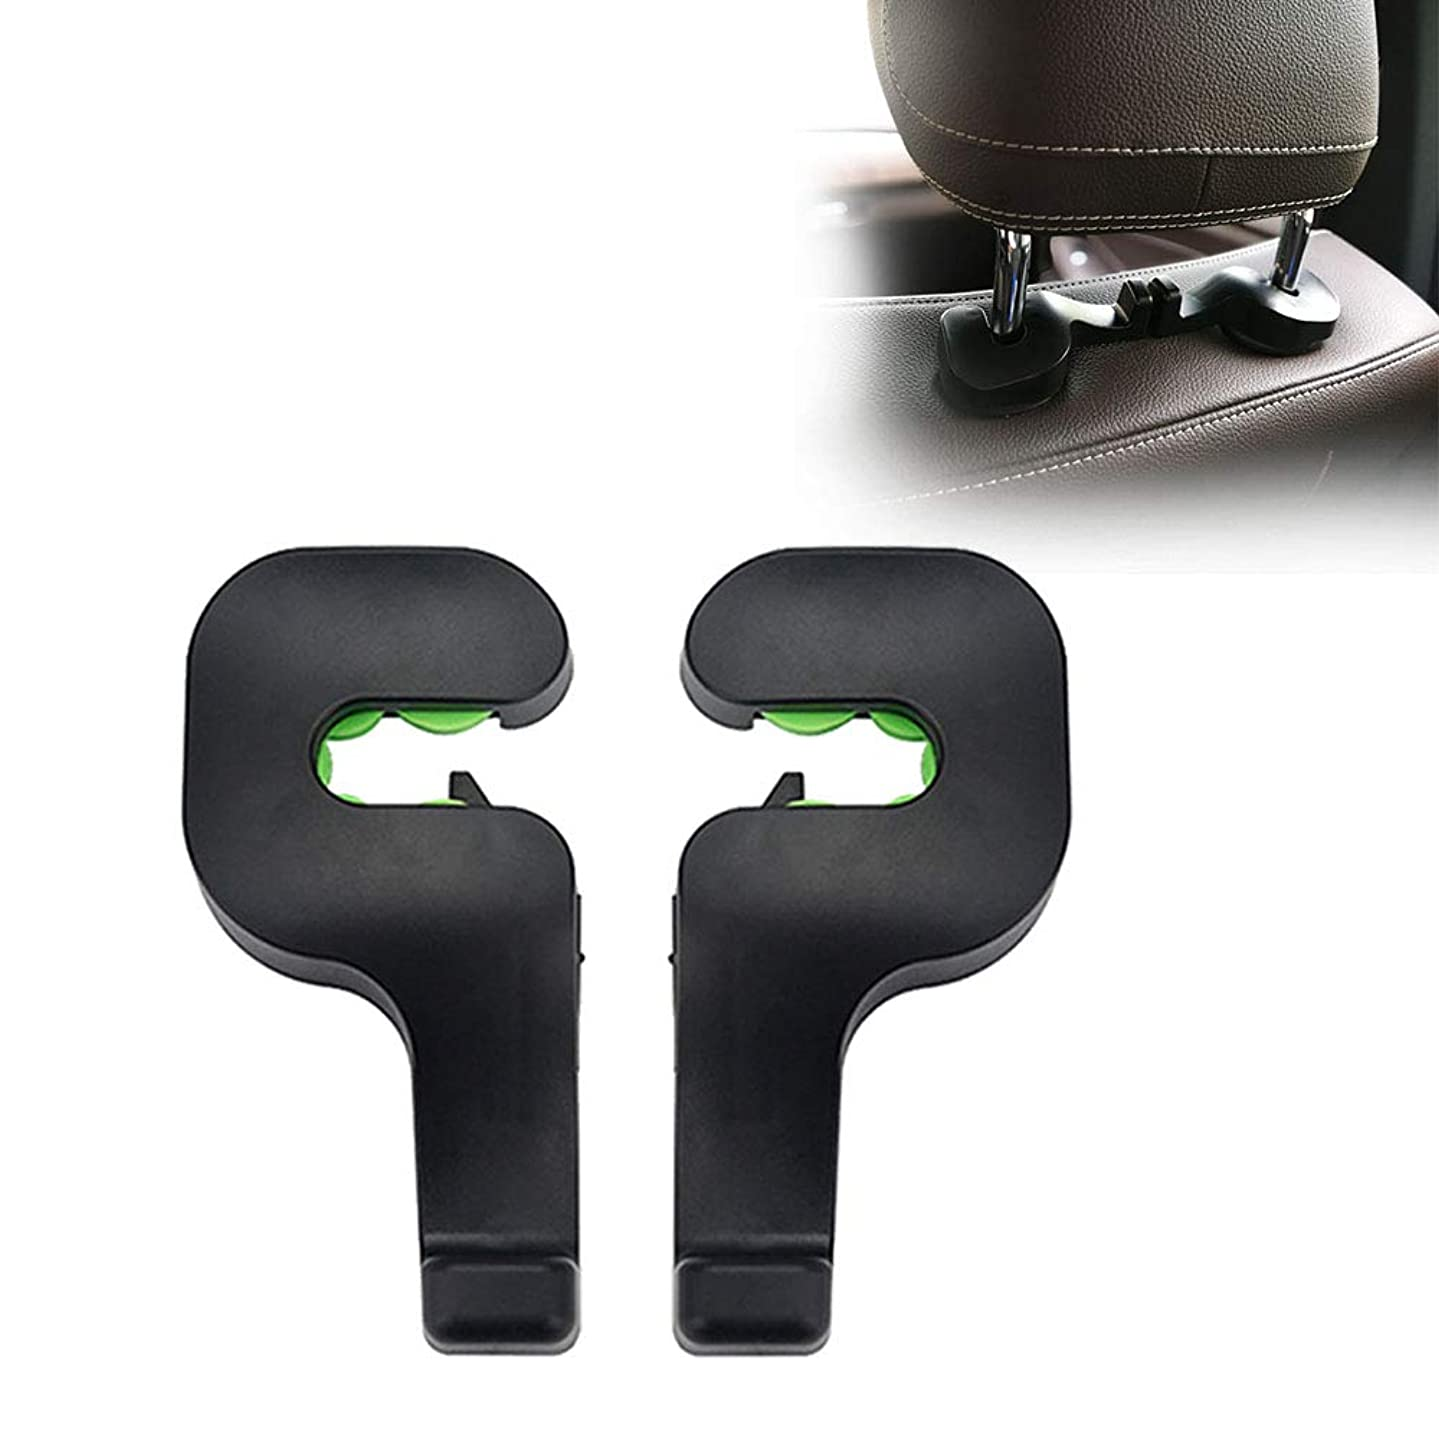 2Pcs Car Headrest Hook For Universal Vehicle Back Seat Organizer Hooks and Hangers With Locking Design For Clothes Purses Bags